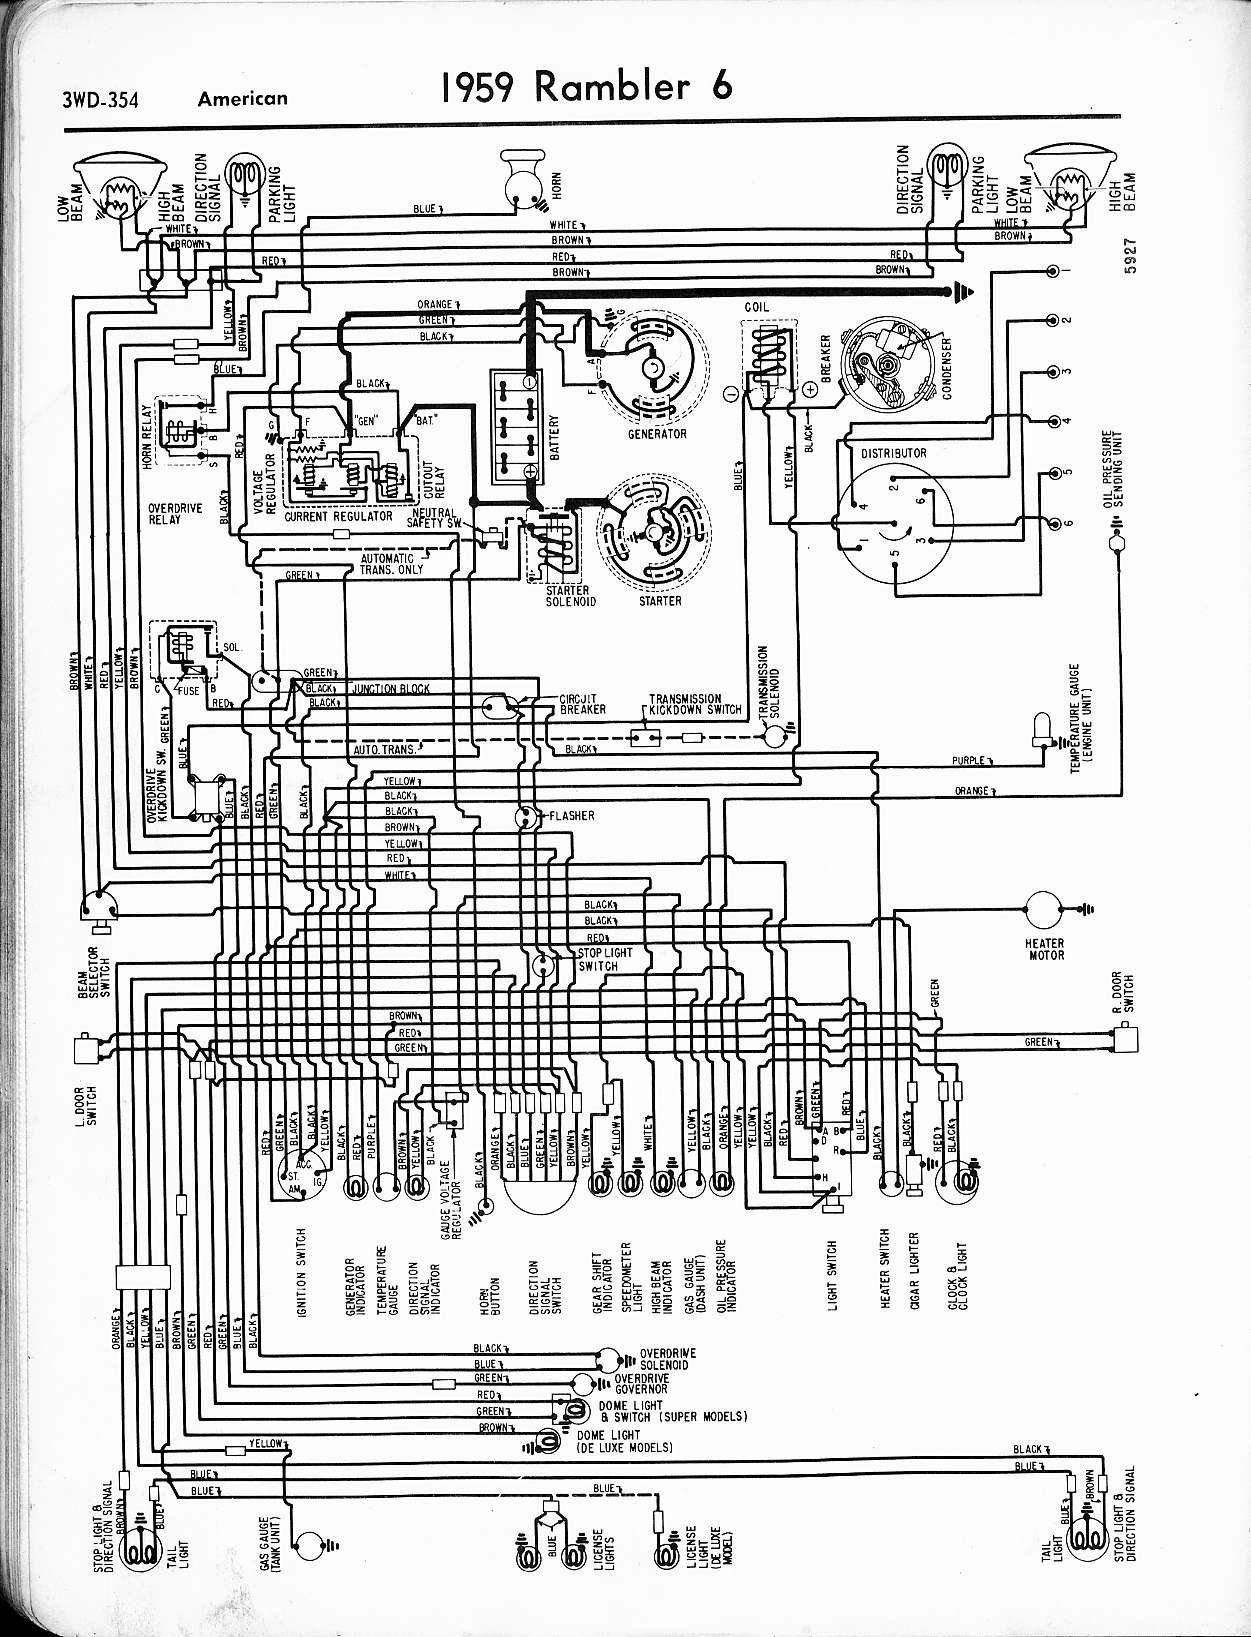 1969 Corvette Wiring Diagram Coil Libraries 1966 F 100 Rambler Diagrams The Old Car Manual Project